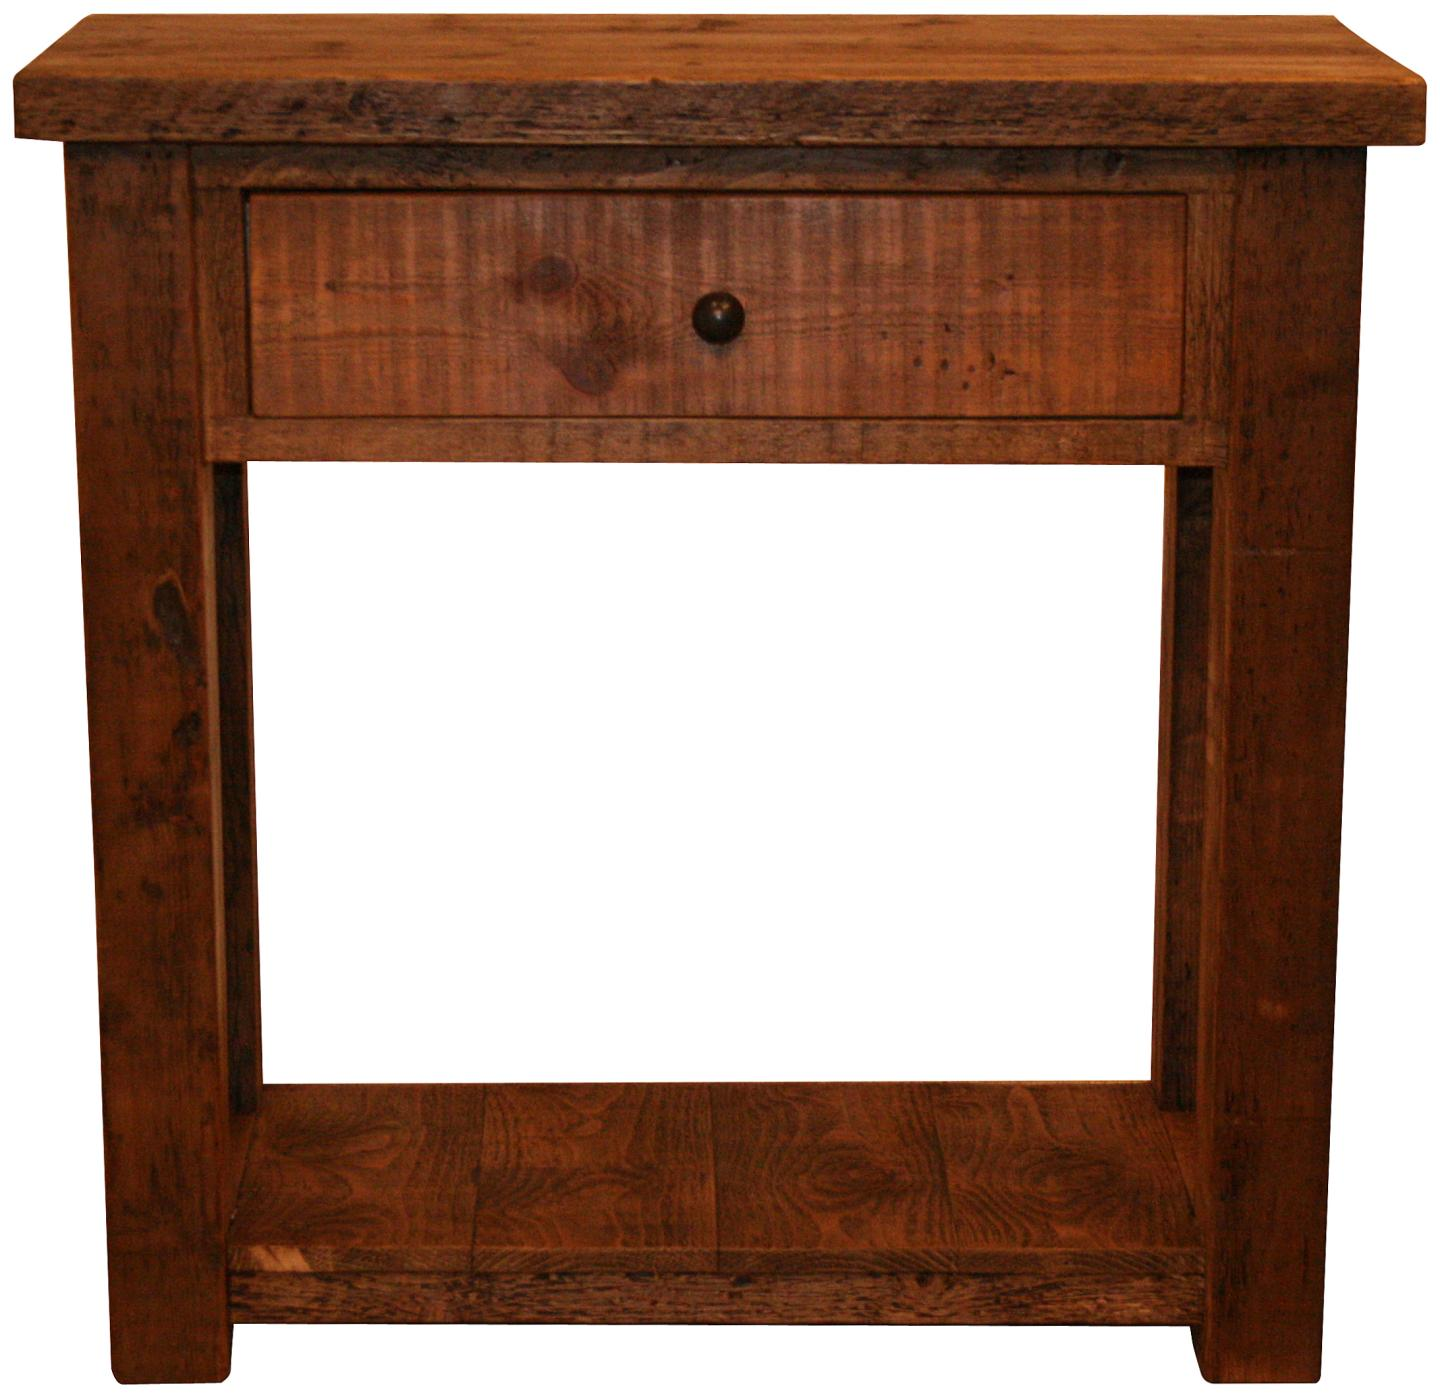 Original 3 Foot Console Table - Vintage & Reclaimed Furniture